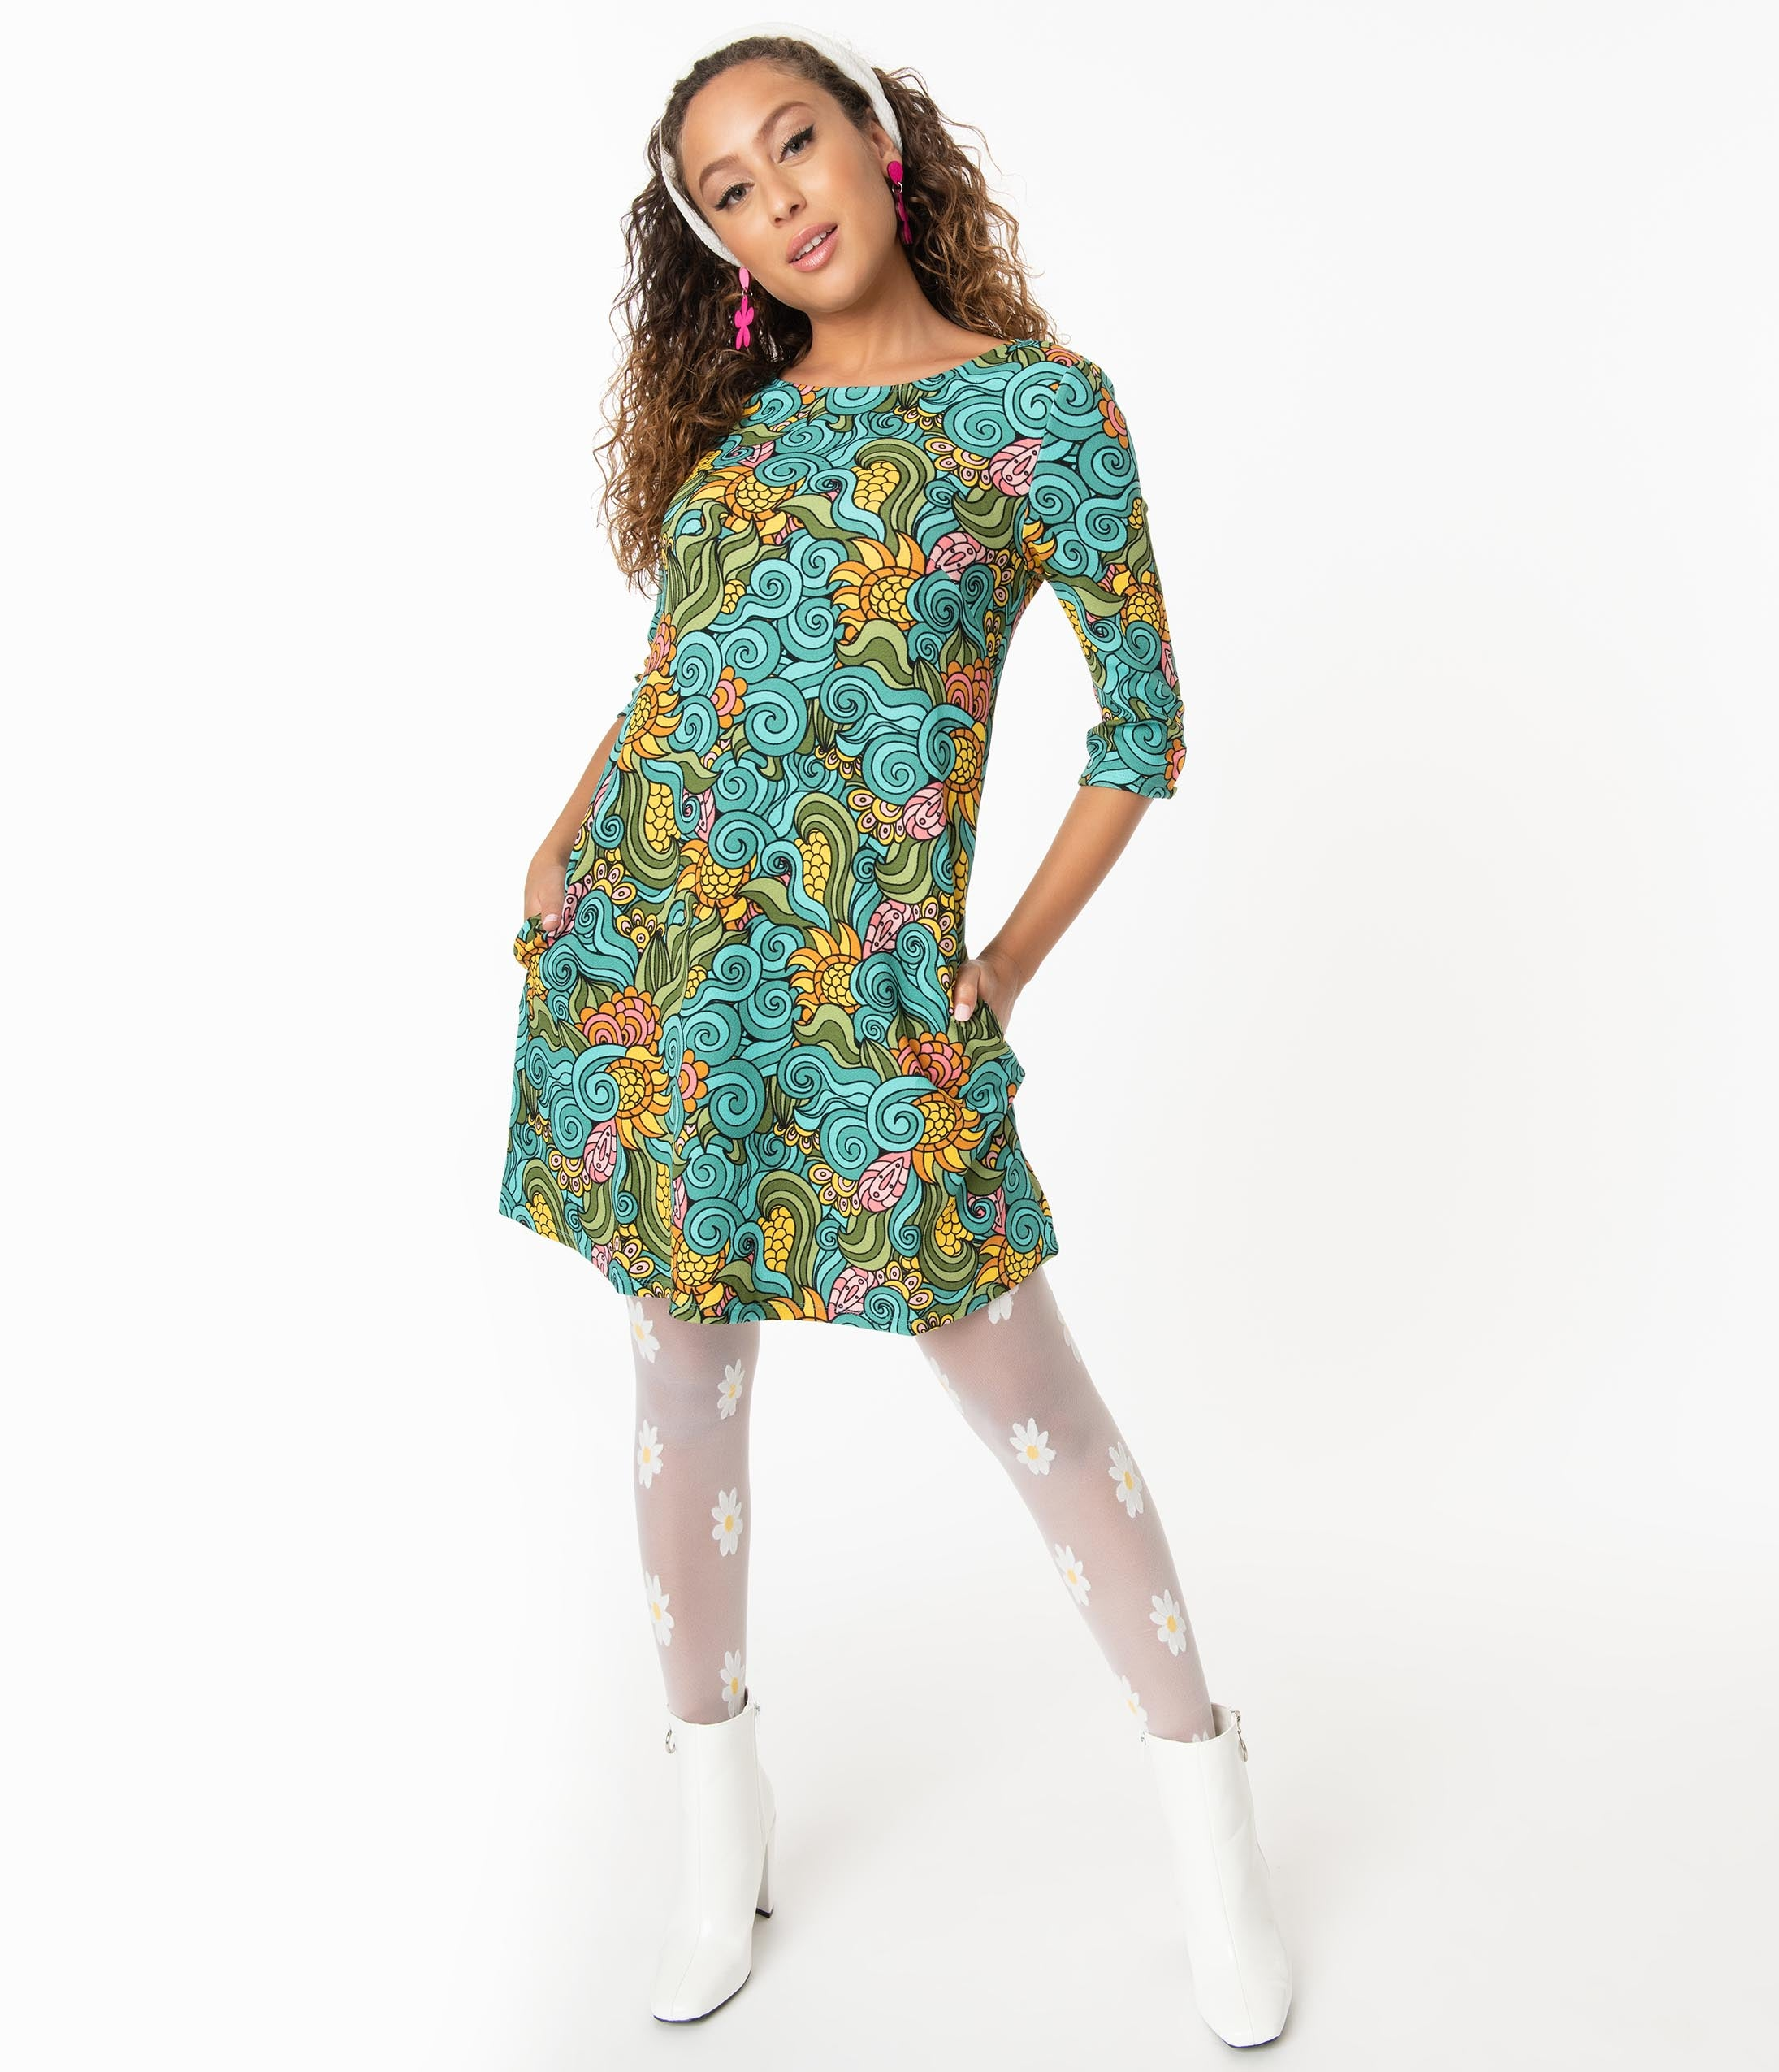 60s Mod Clothing Outfit Ideas Smak Parlour Groovy Floral Cosmic Shift Dress $58.00 AT vintagedancer.com